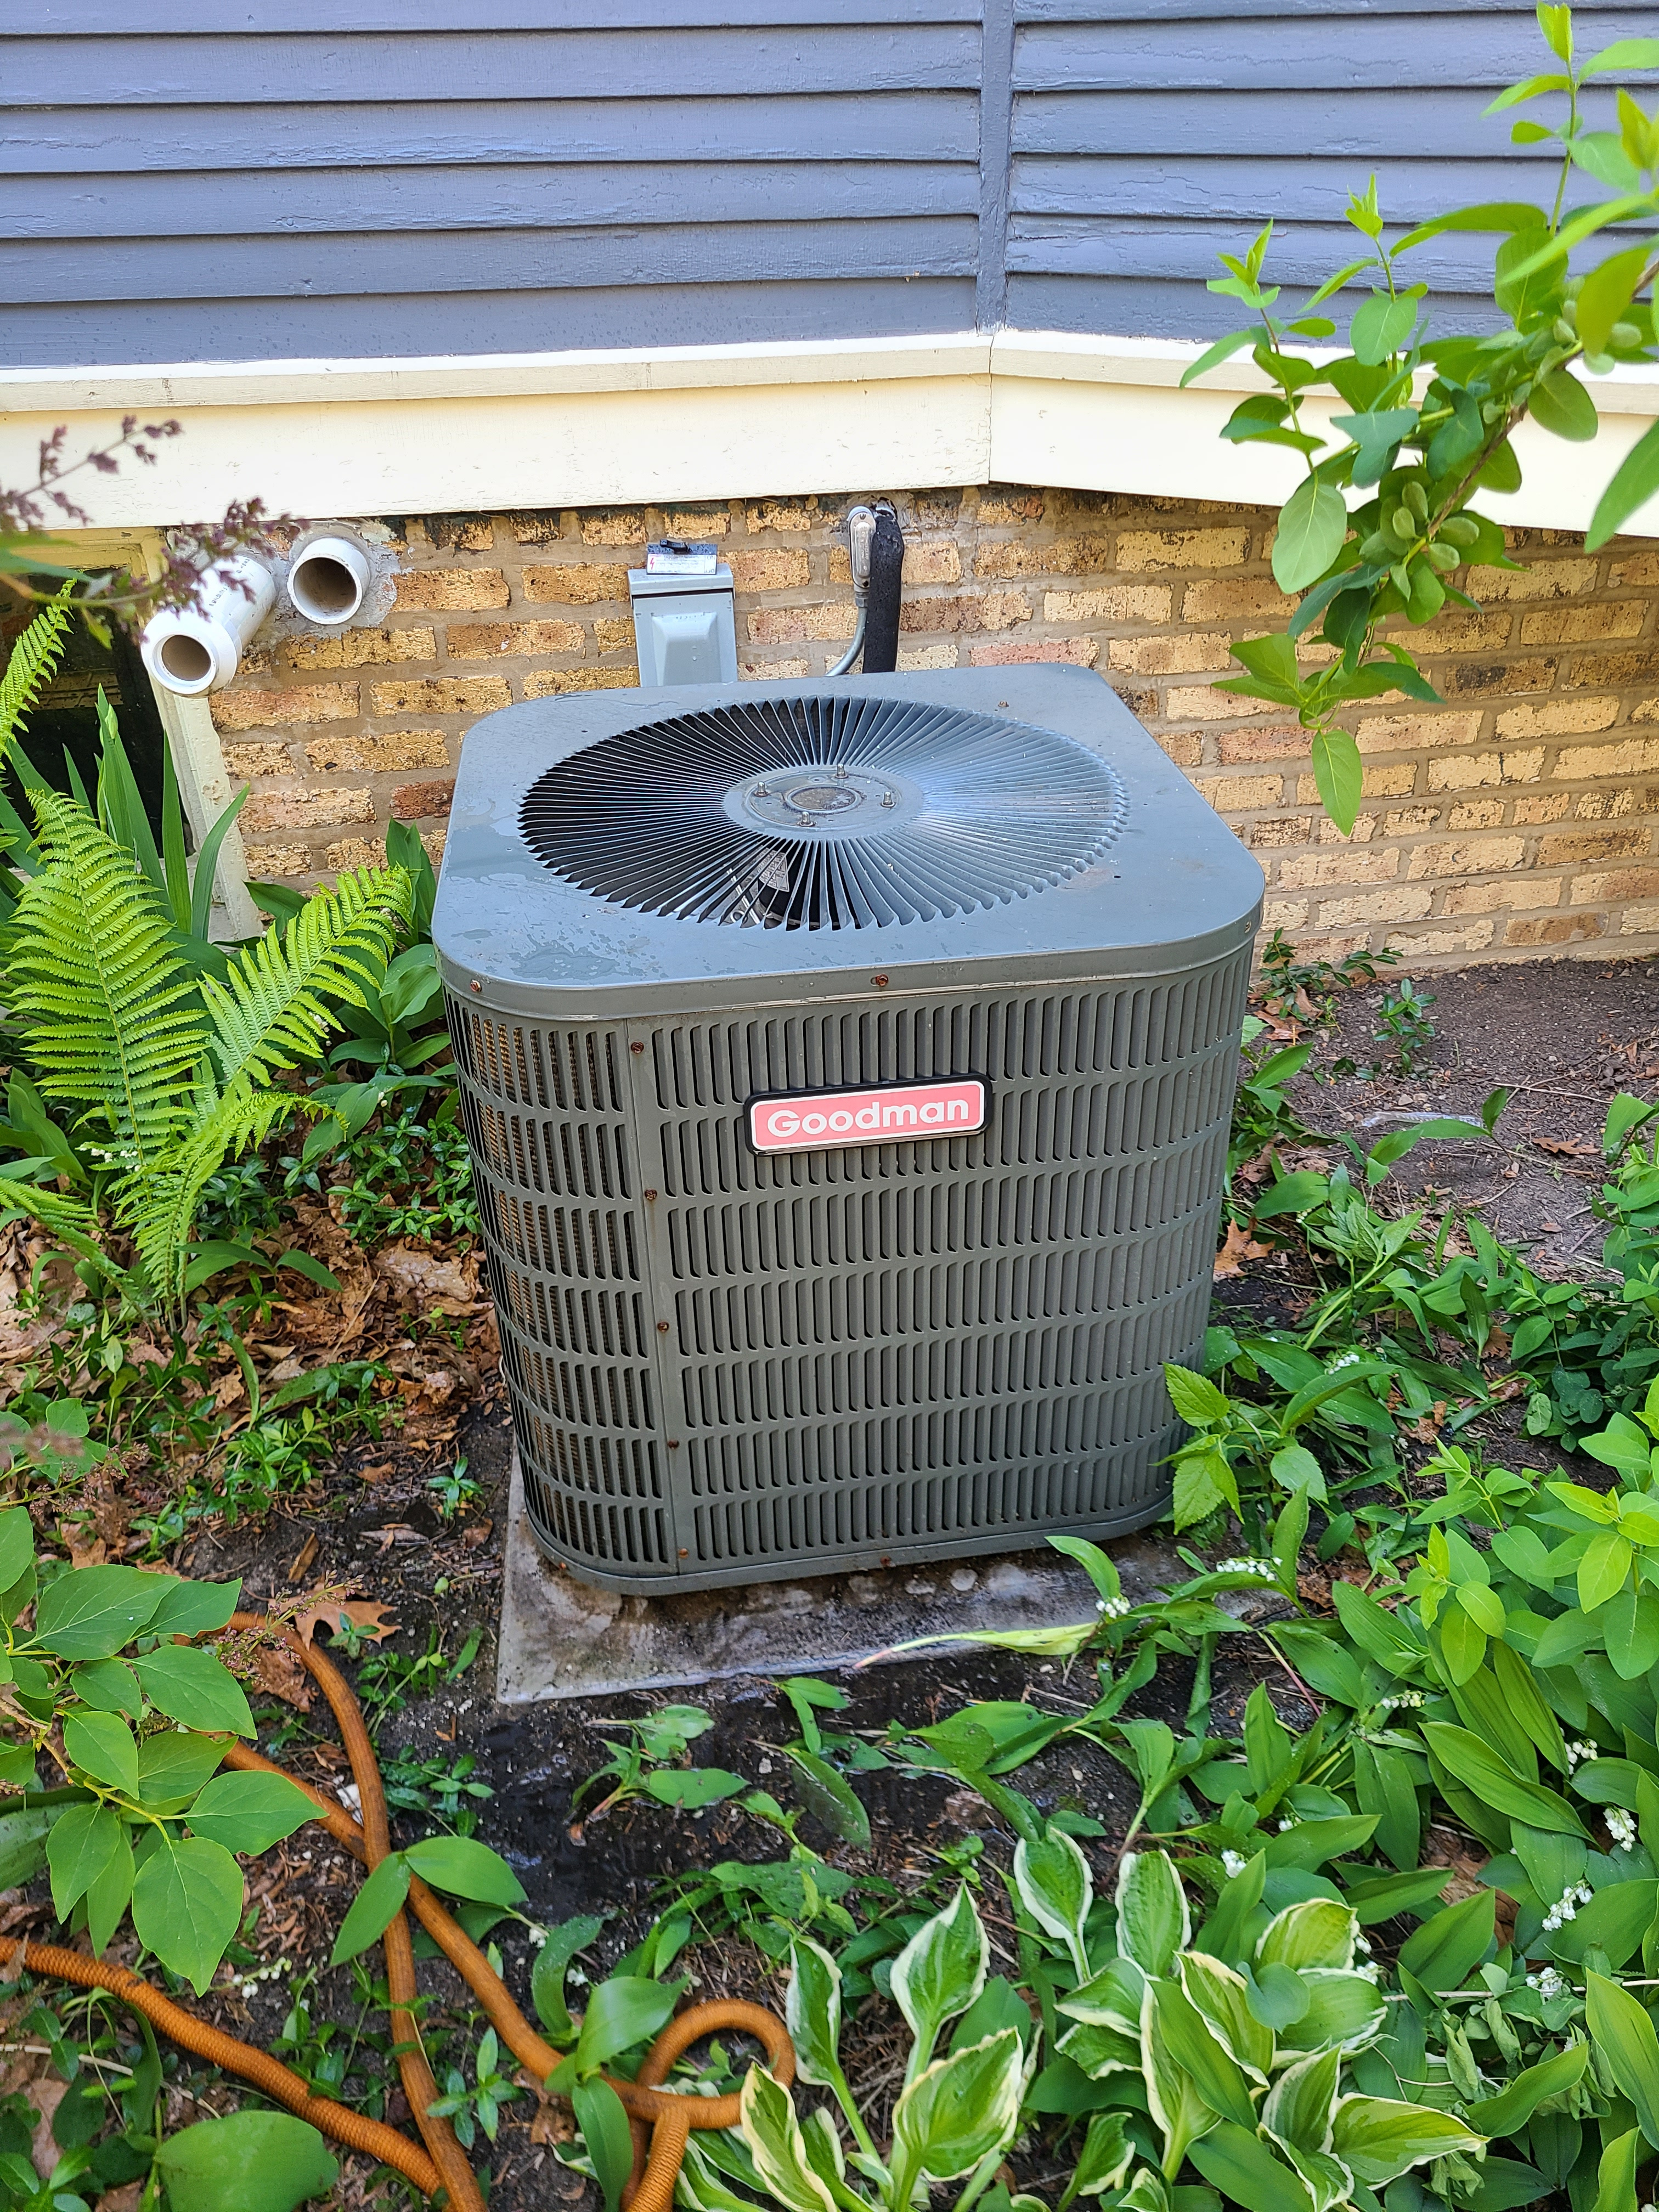 Goodman r22 system cleaned and ready for spring/ summer operation...replacement quote left for system using outdated ozone depleting refrigerant